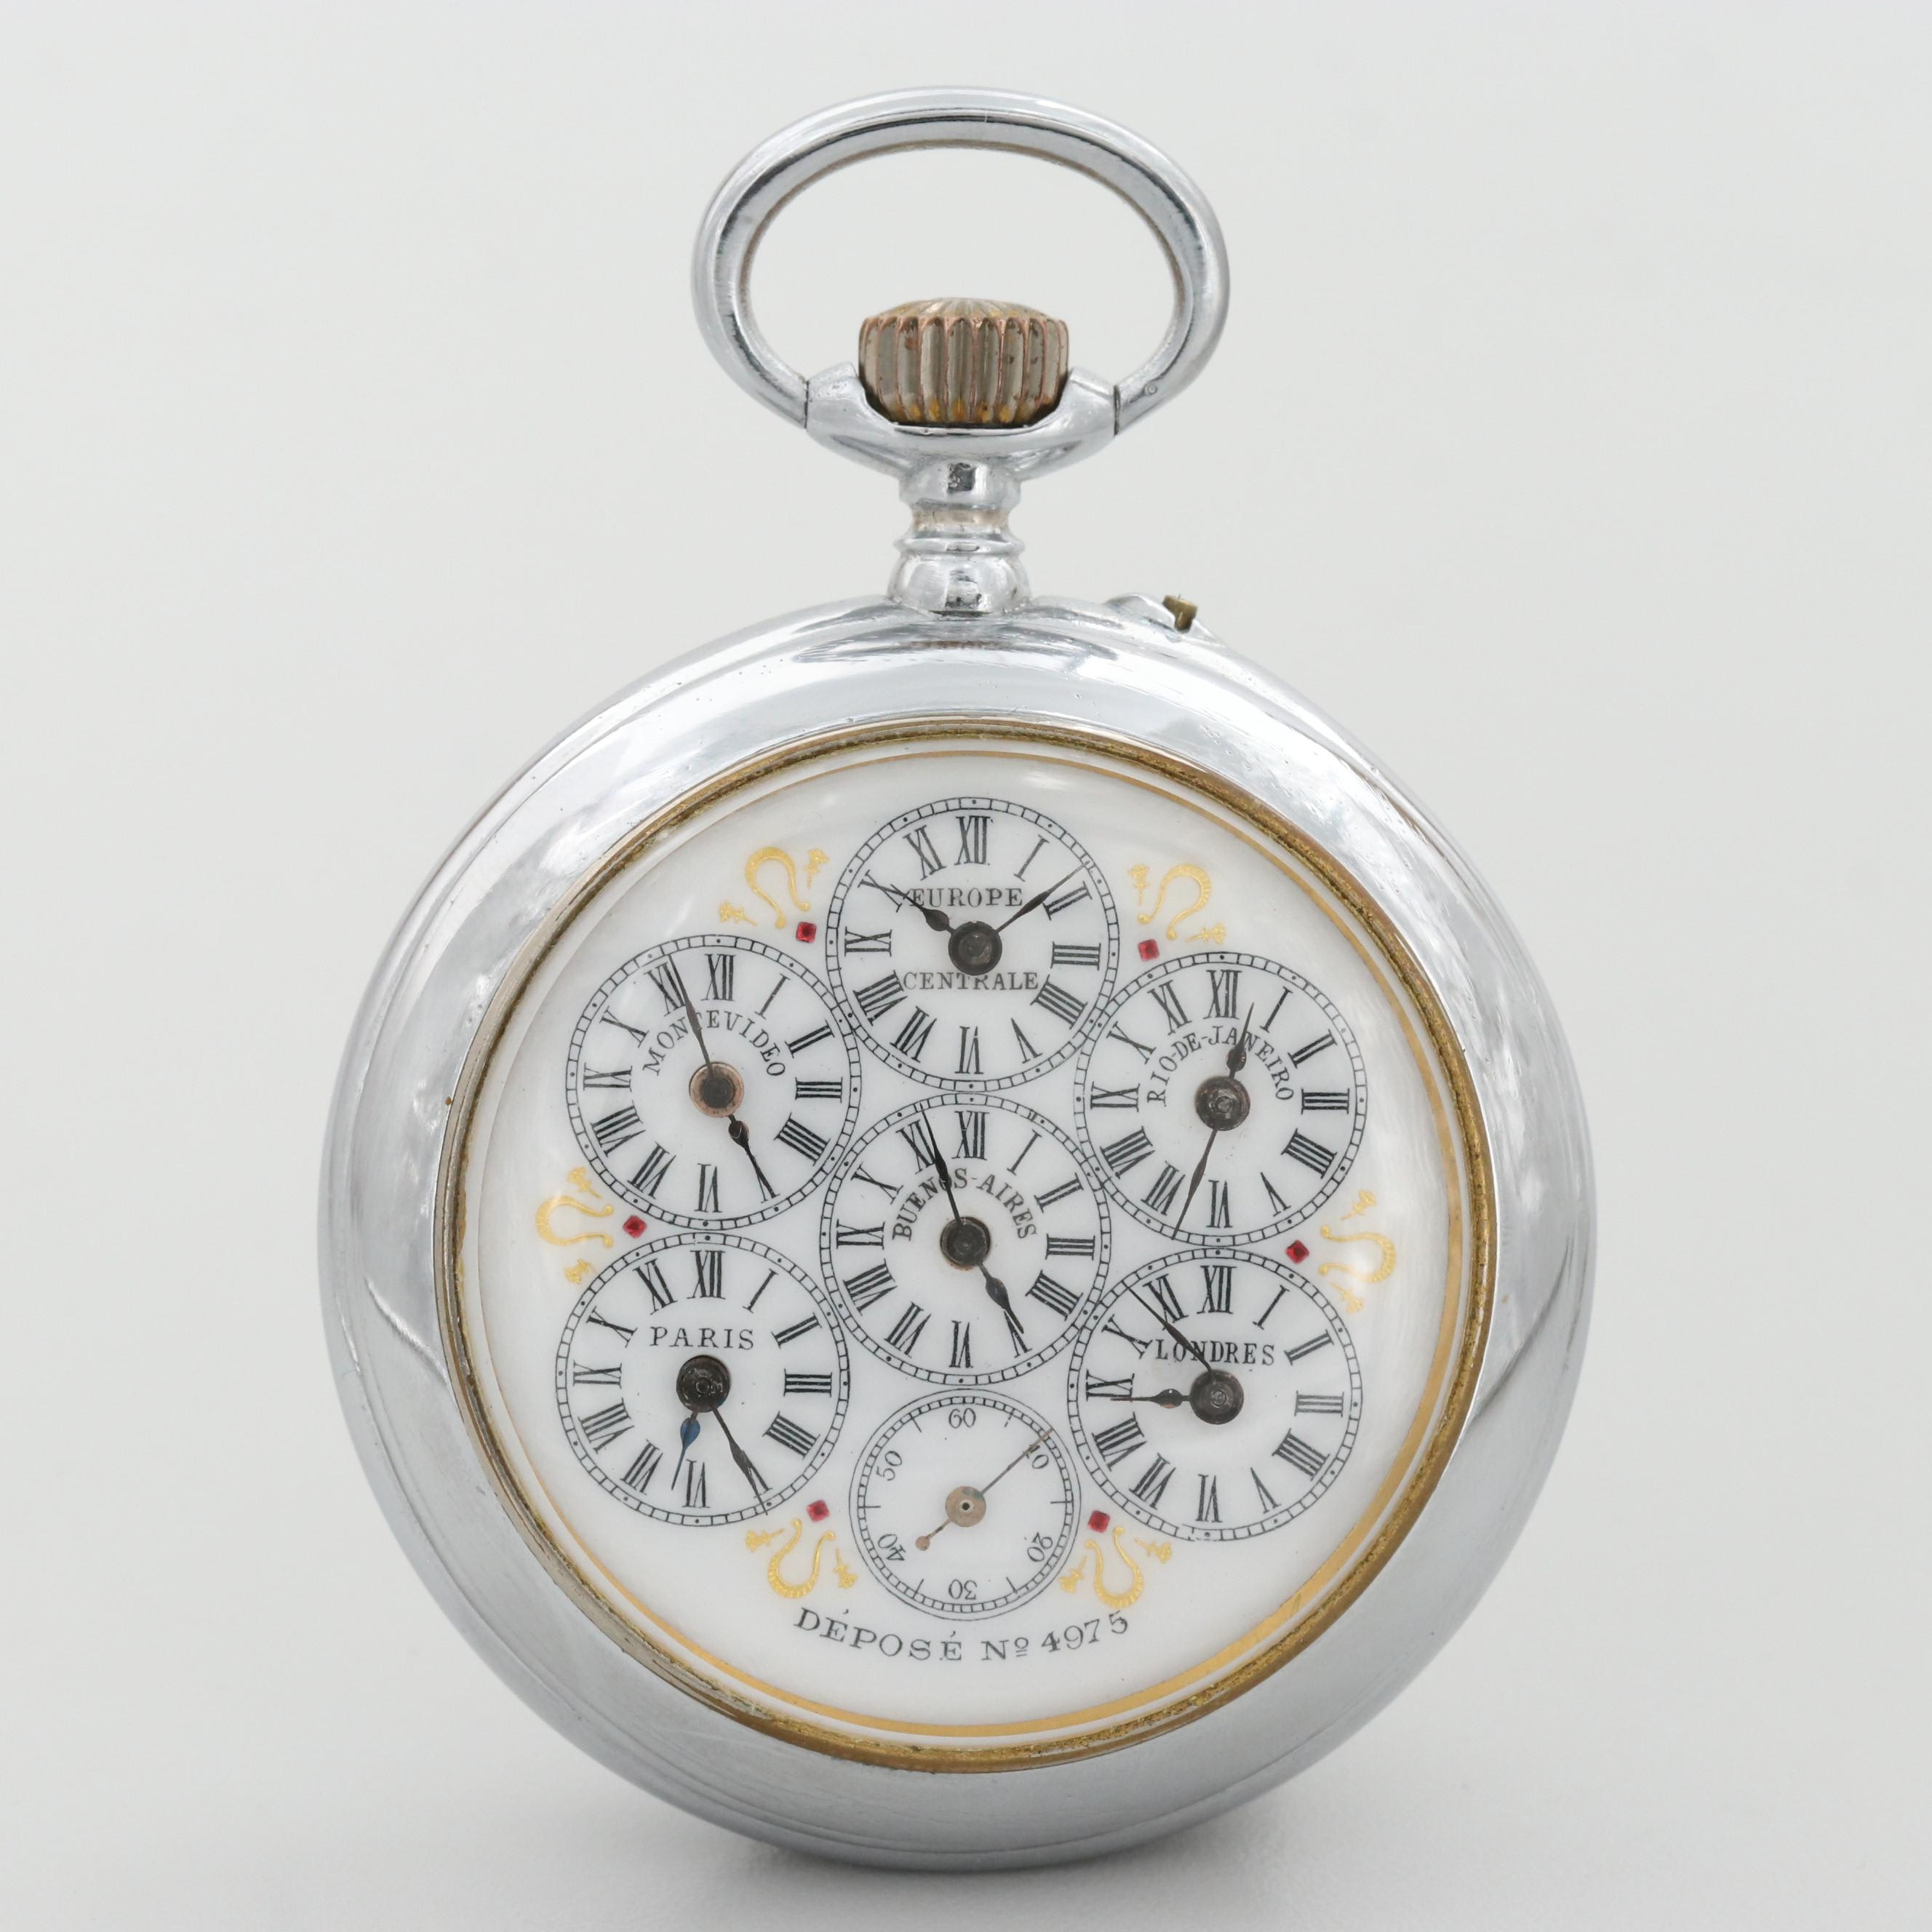 Antique Swiss Six City World Time Silver Tone Open Face Pocket Watch, Circa 1890